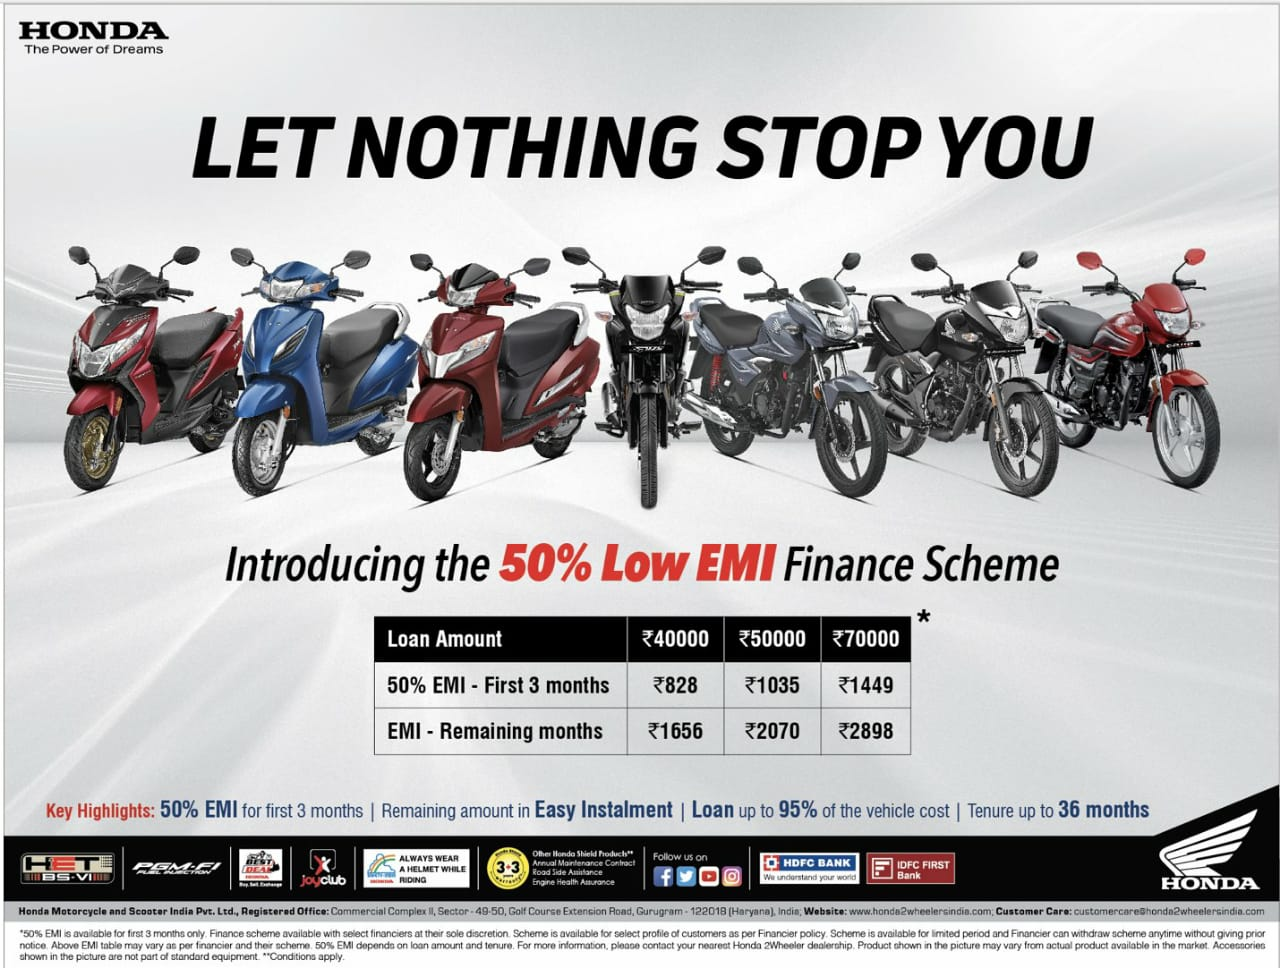 Honda Online purchase portal is launched